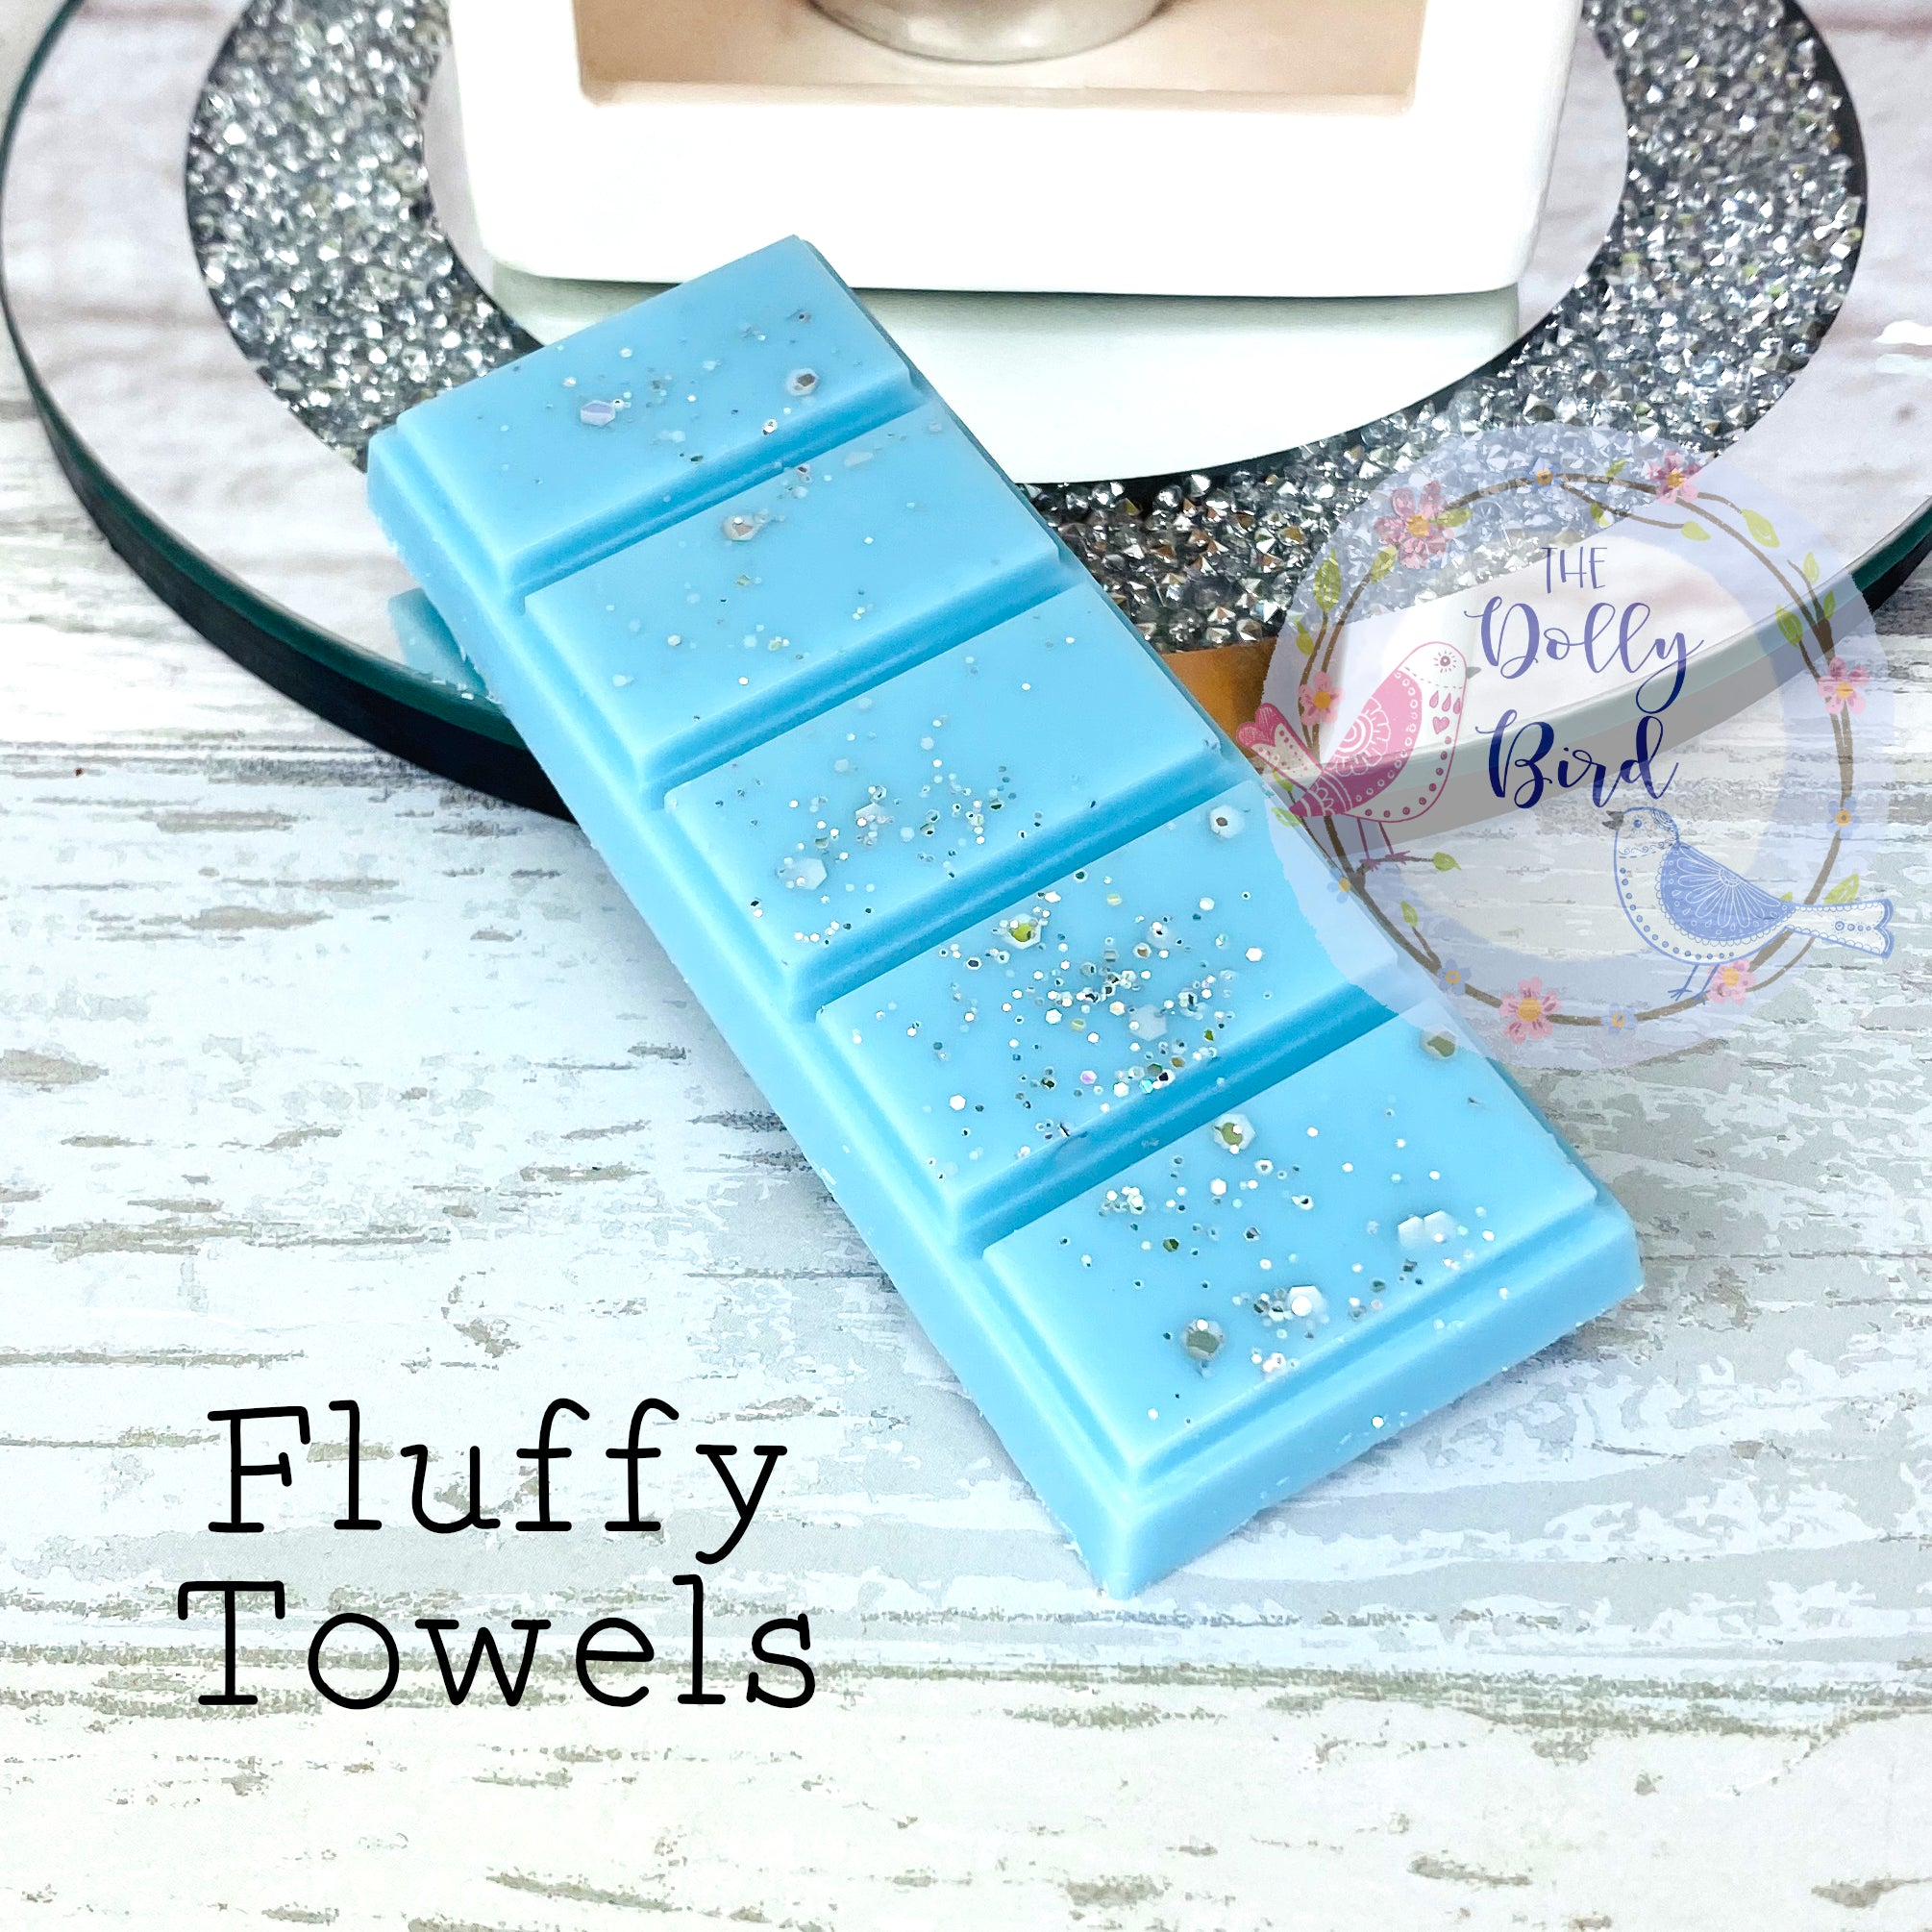 Fluffy Towels Laundry Scented Wax Melt Snap Bar, Fluffy Towels Laundry Scented Wax, Soy Wax Melts, Wax Snap Bar, Washing Scented Wax Melts, Fresh Scent Wax Melts